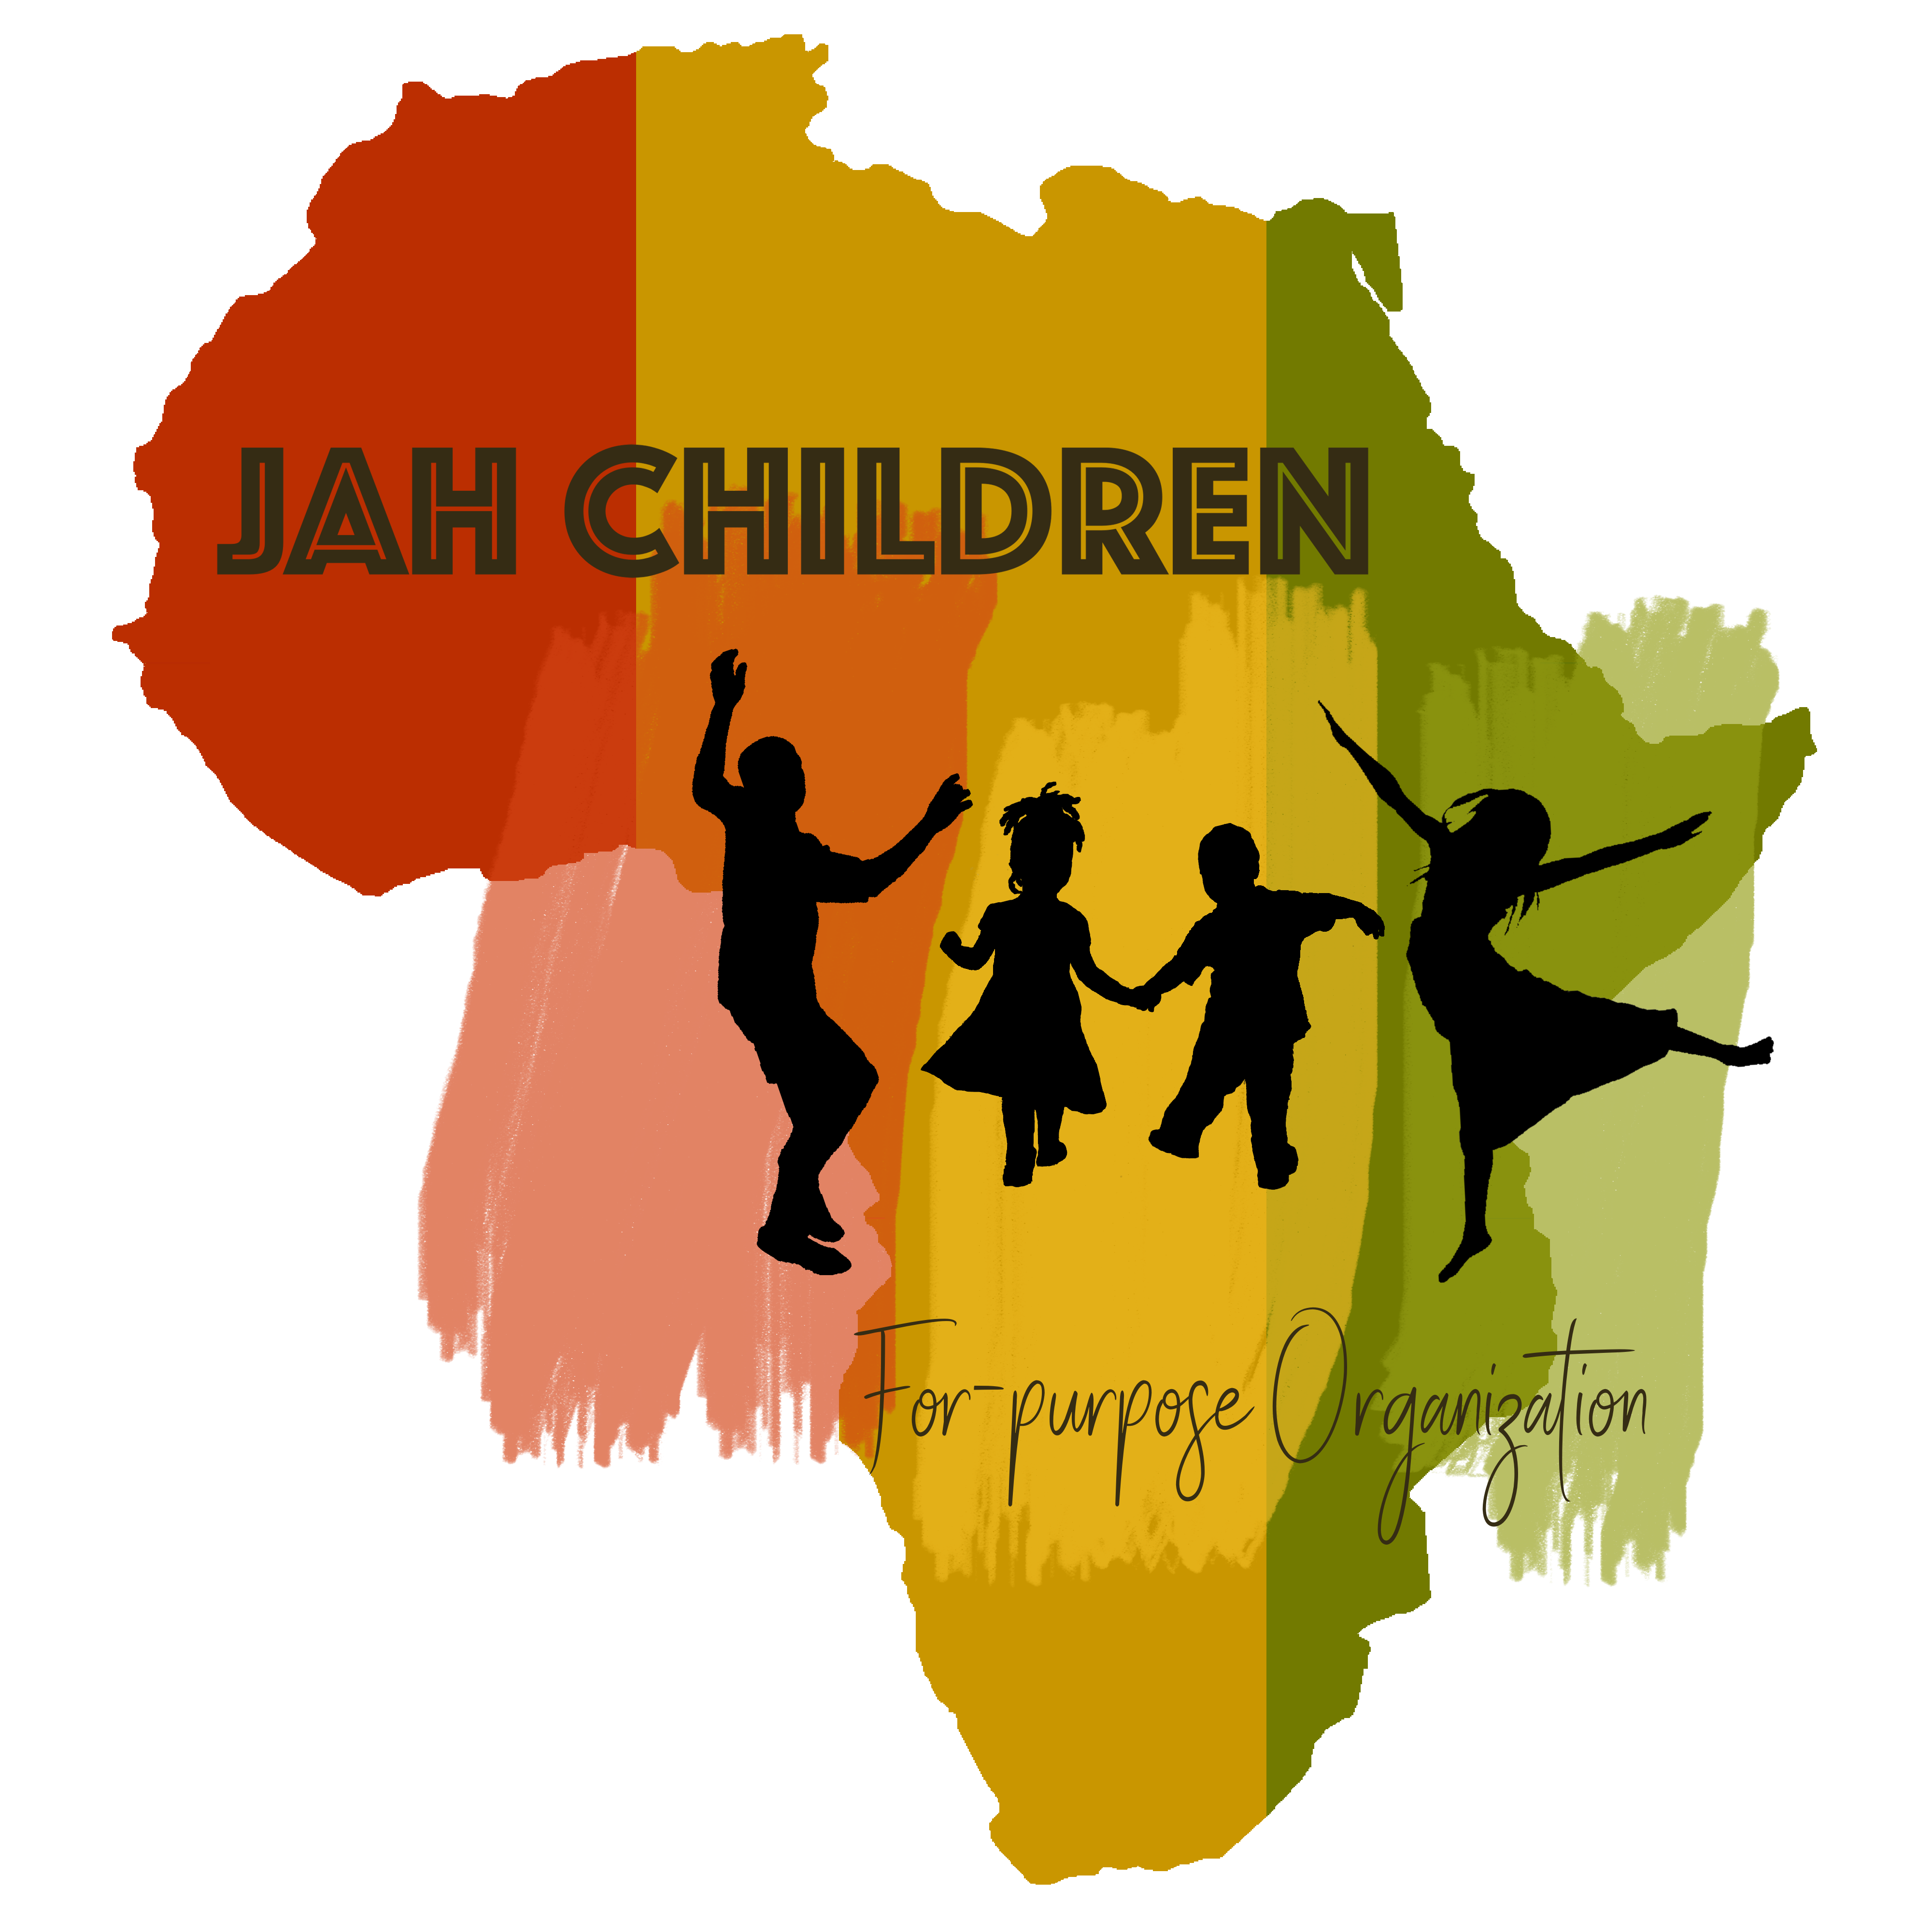 Jah Children